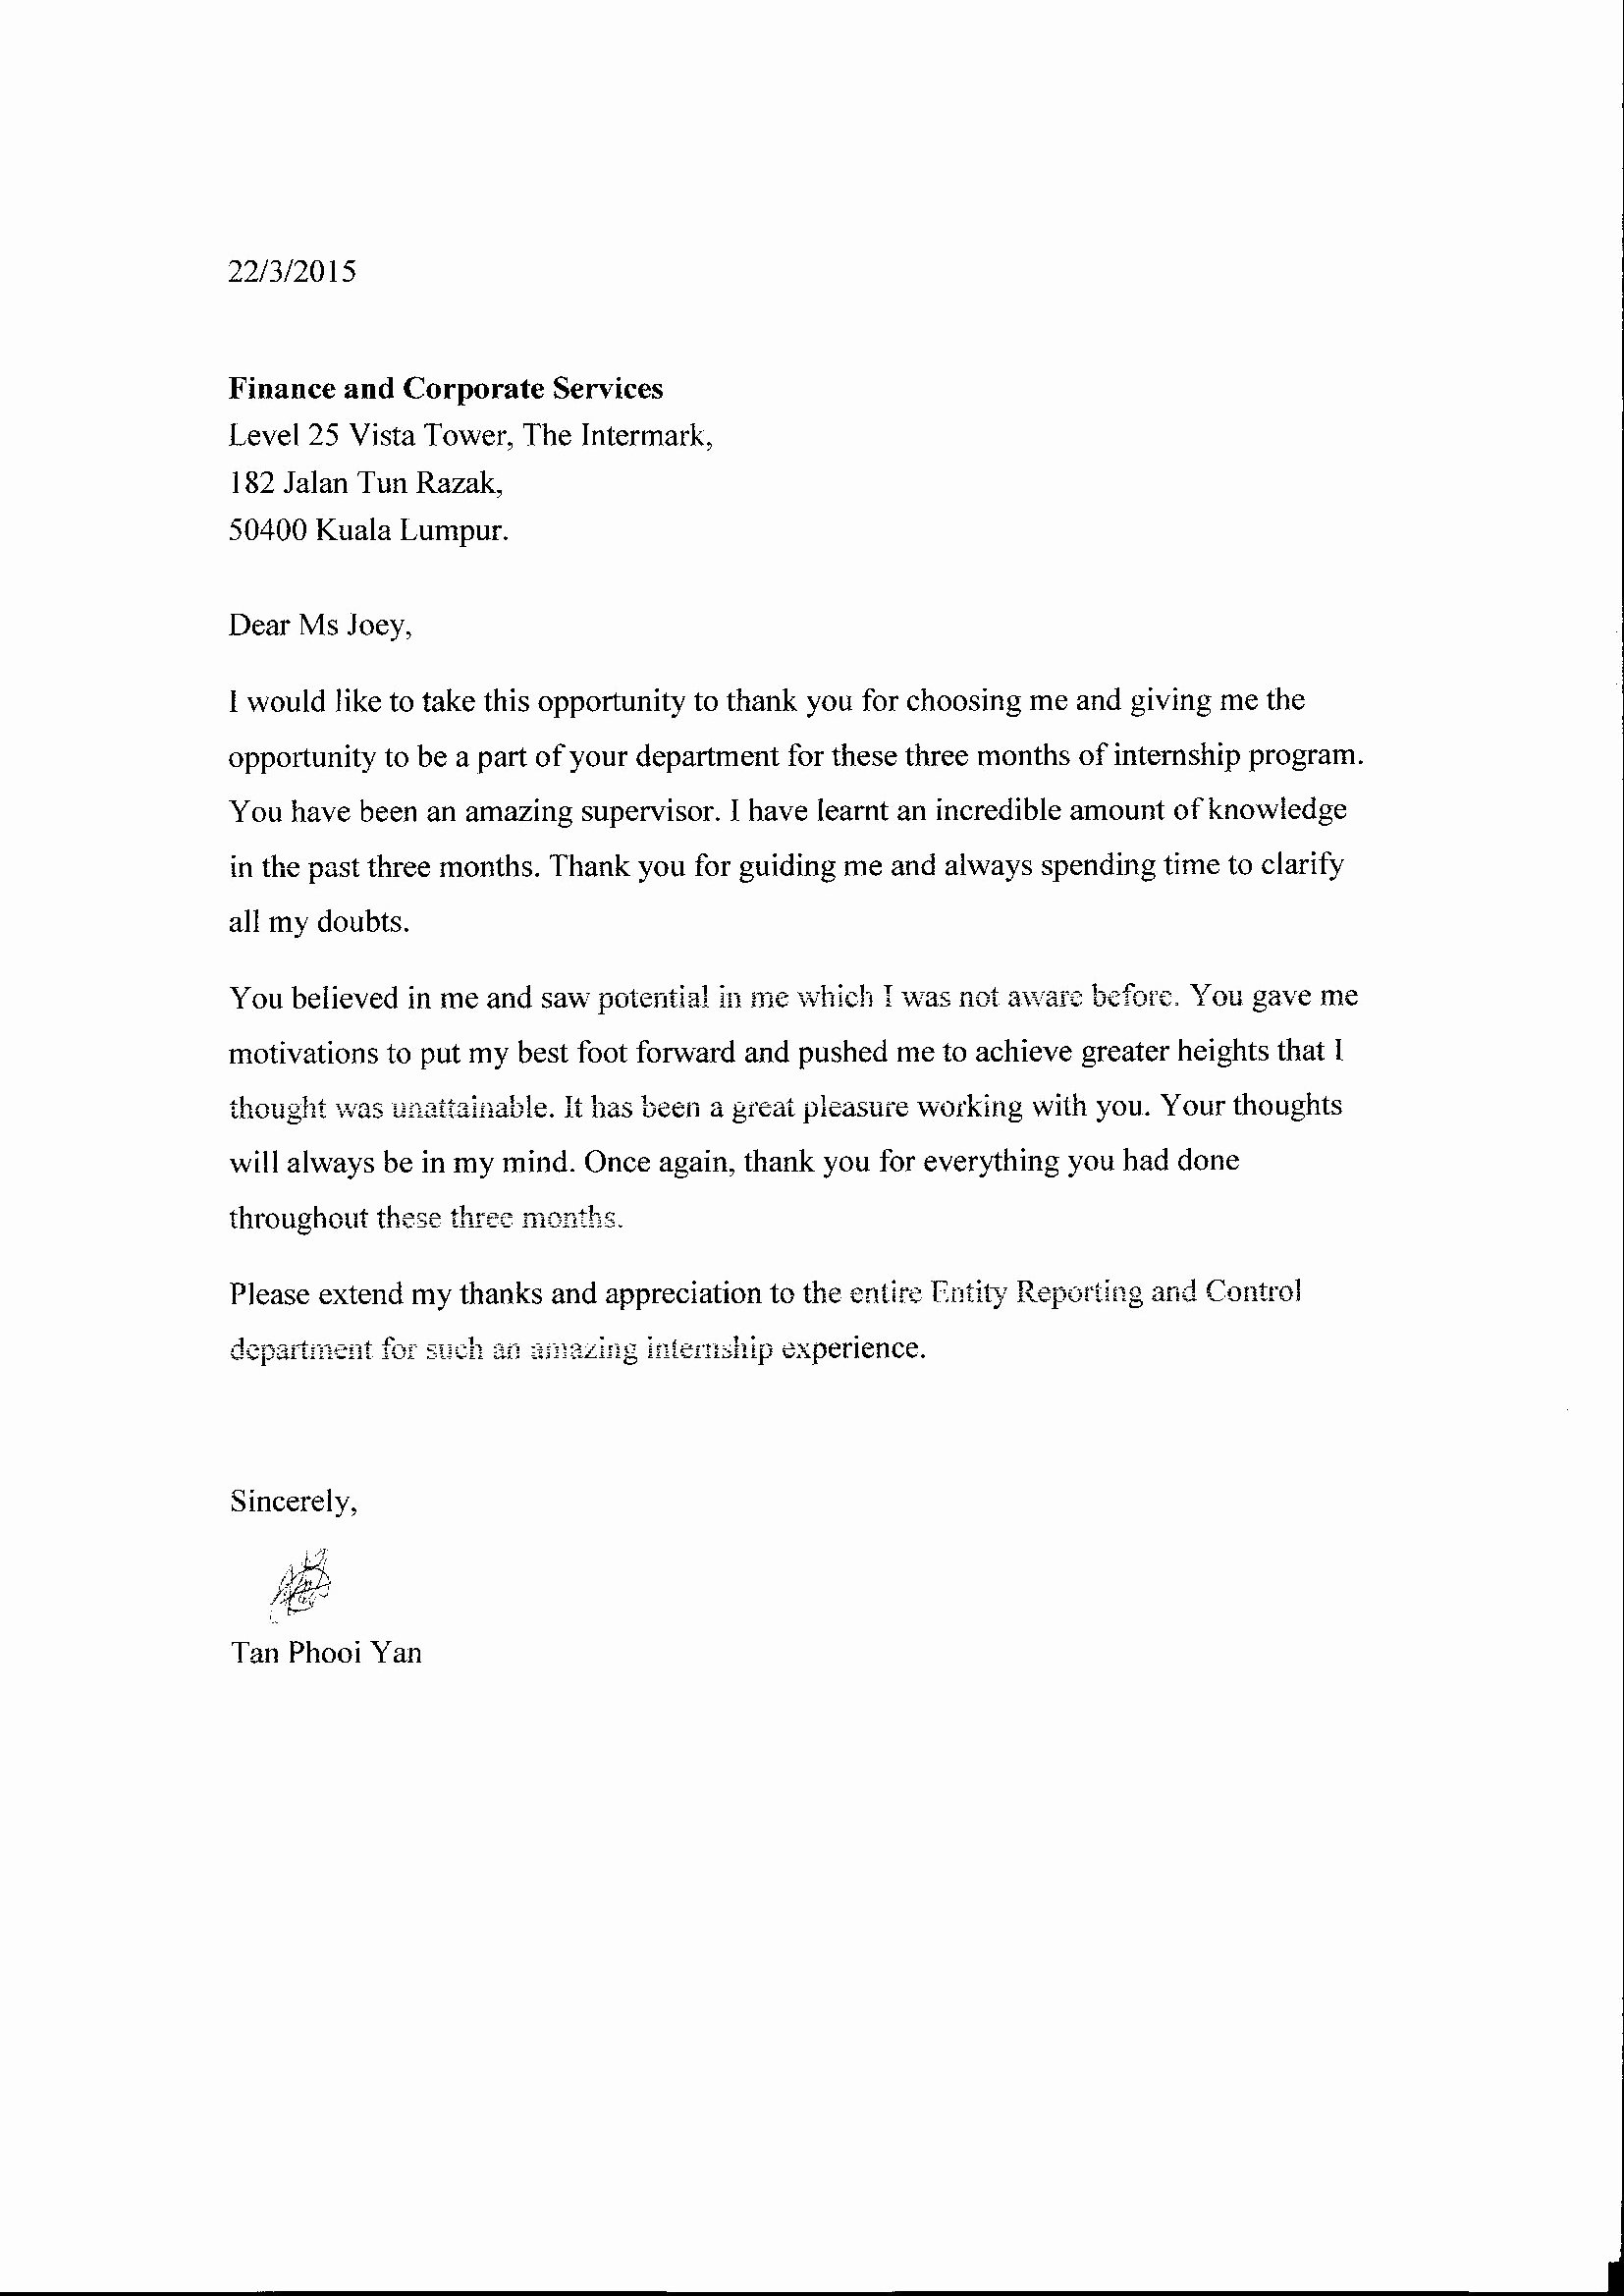 Letter Of Recommendation Thank You Elegant Thank You Letter Reference Letter Tan Phooi Yan